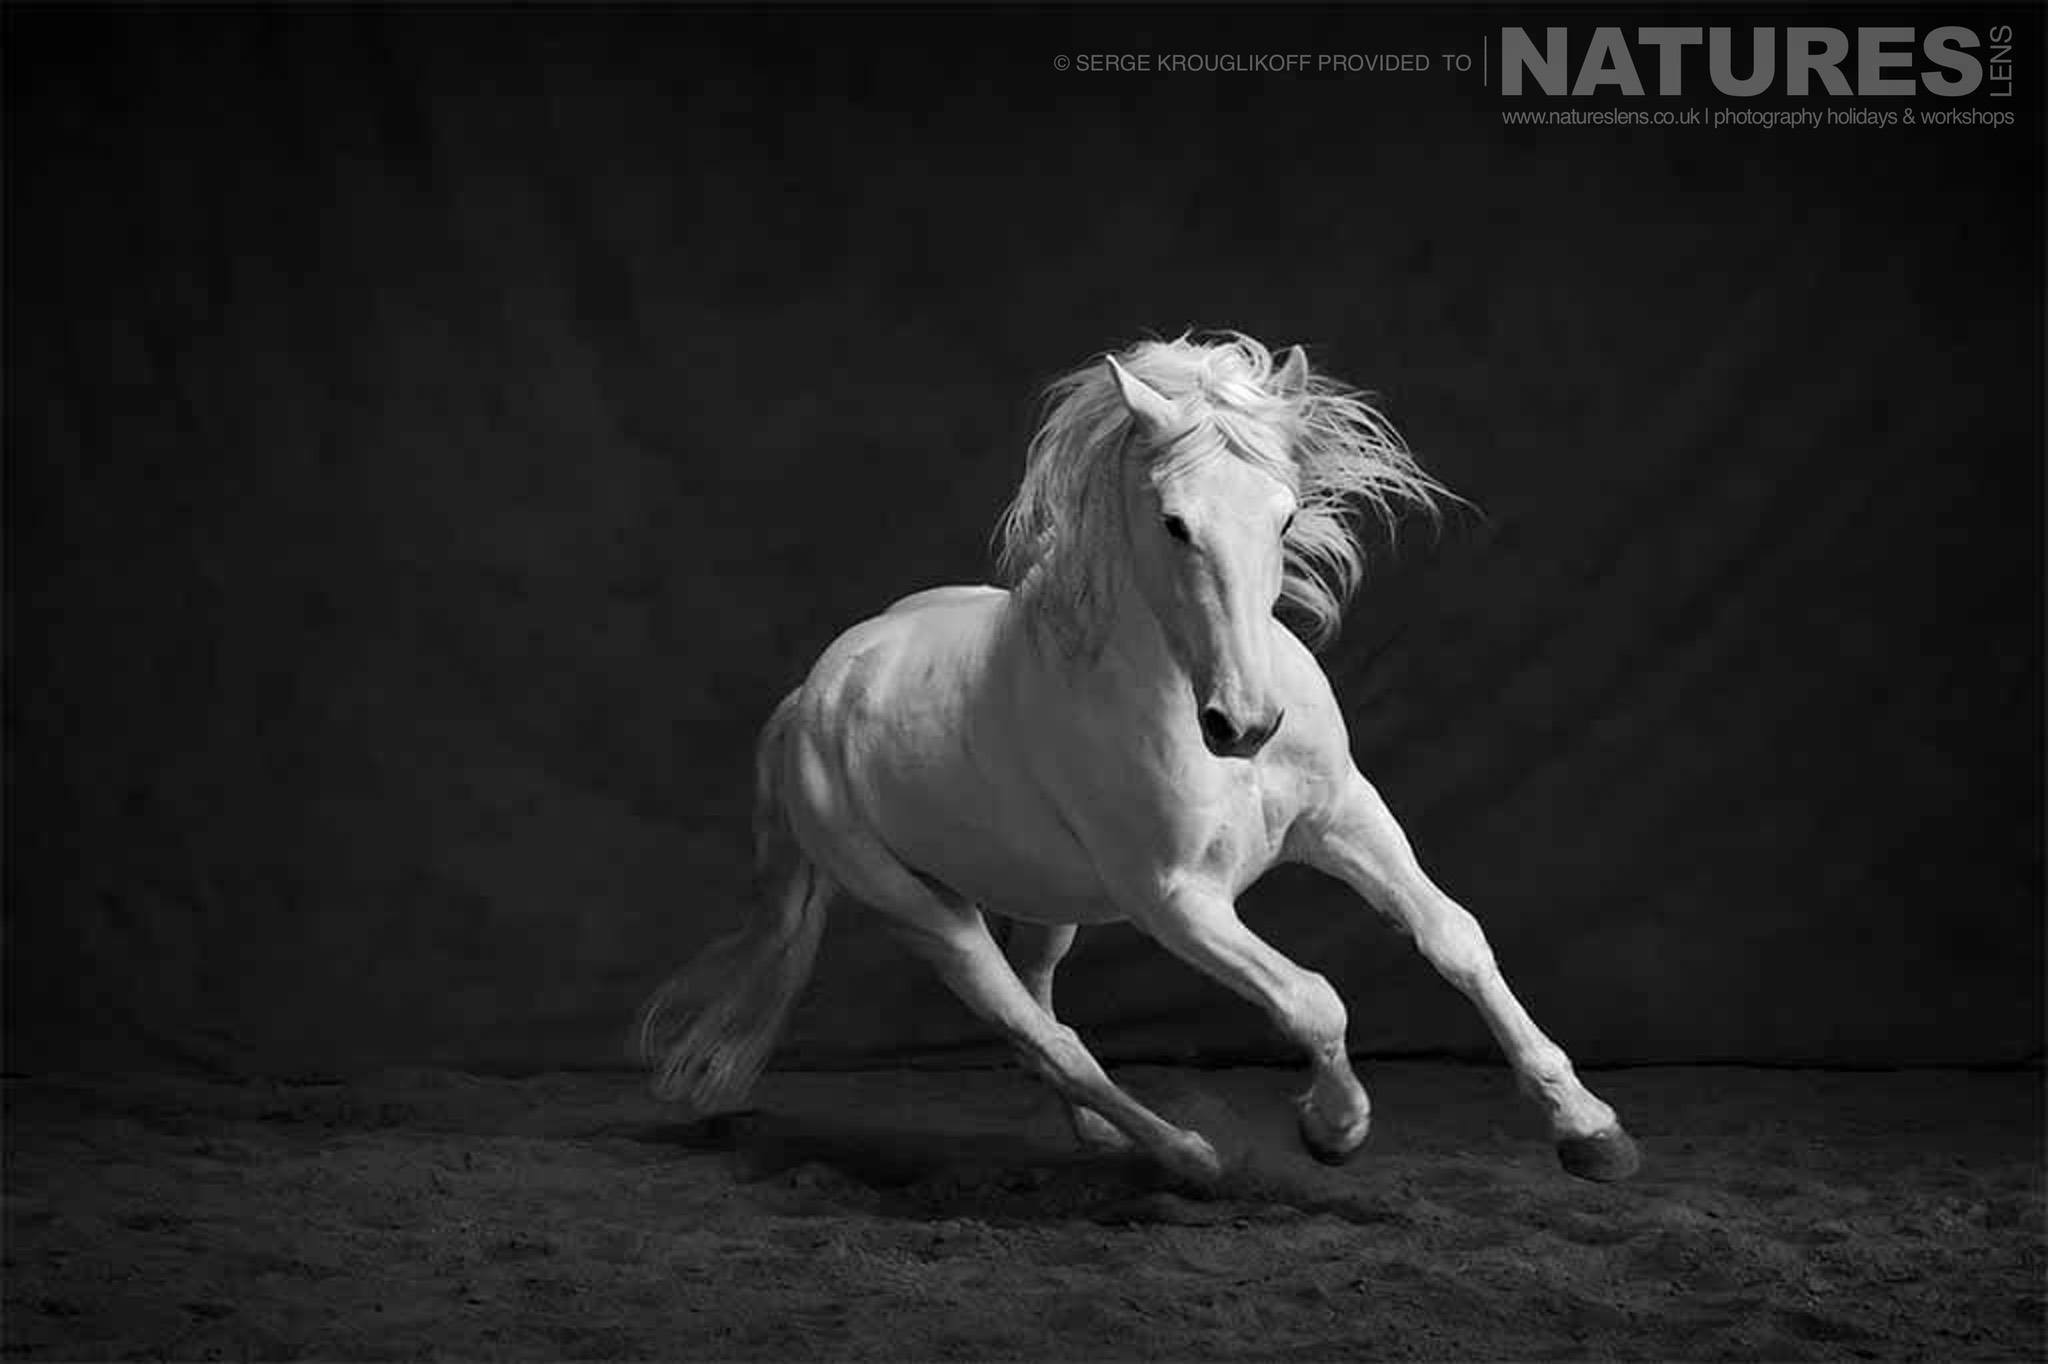 White stallion photographed during the special portrait session typical of the type of image that may be captured during the NaturesLens Wild White Horses of the Camargue Photography Holiday